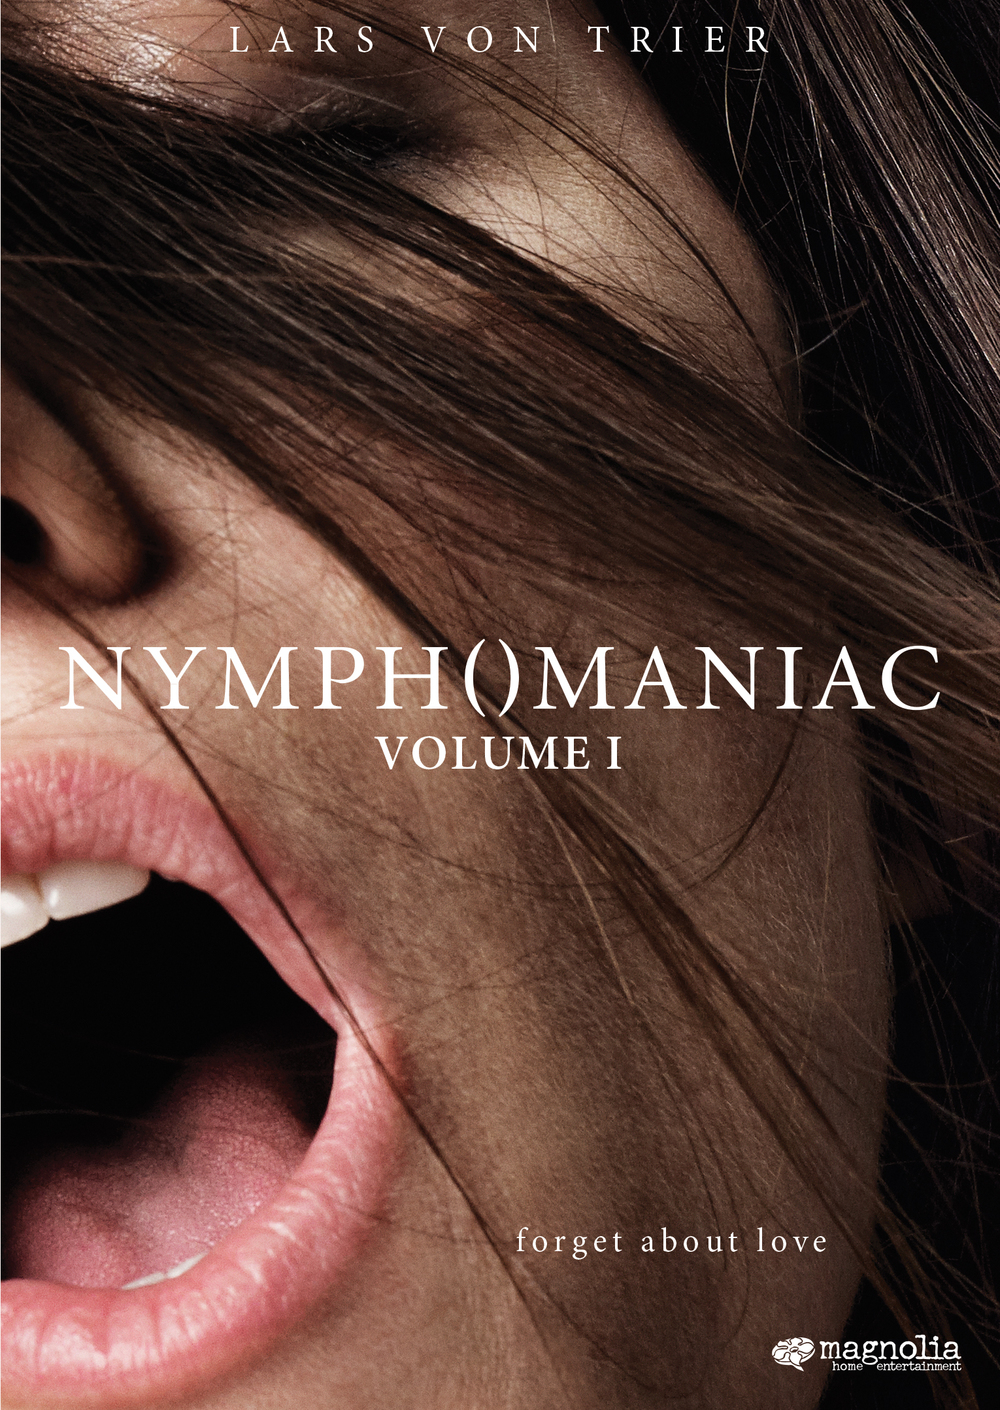 Nymphomaniac: Volume 1